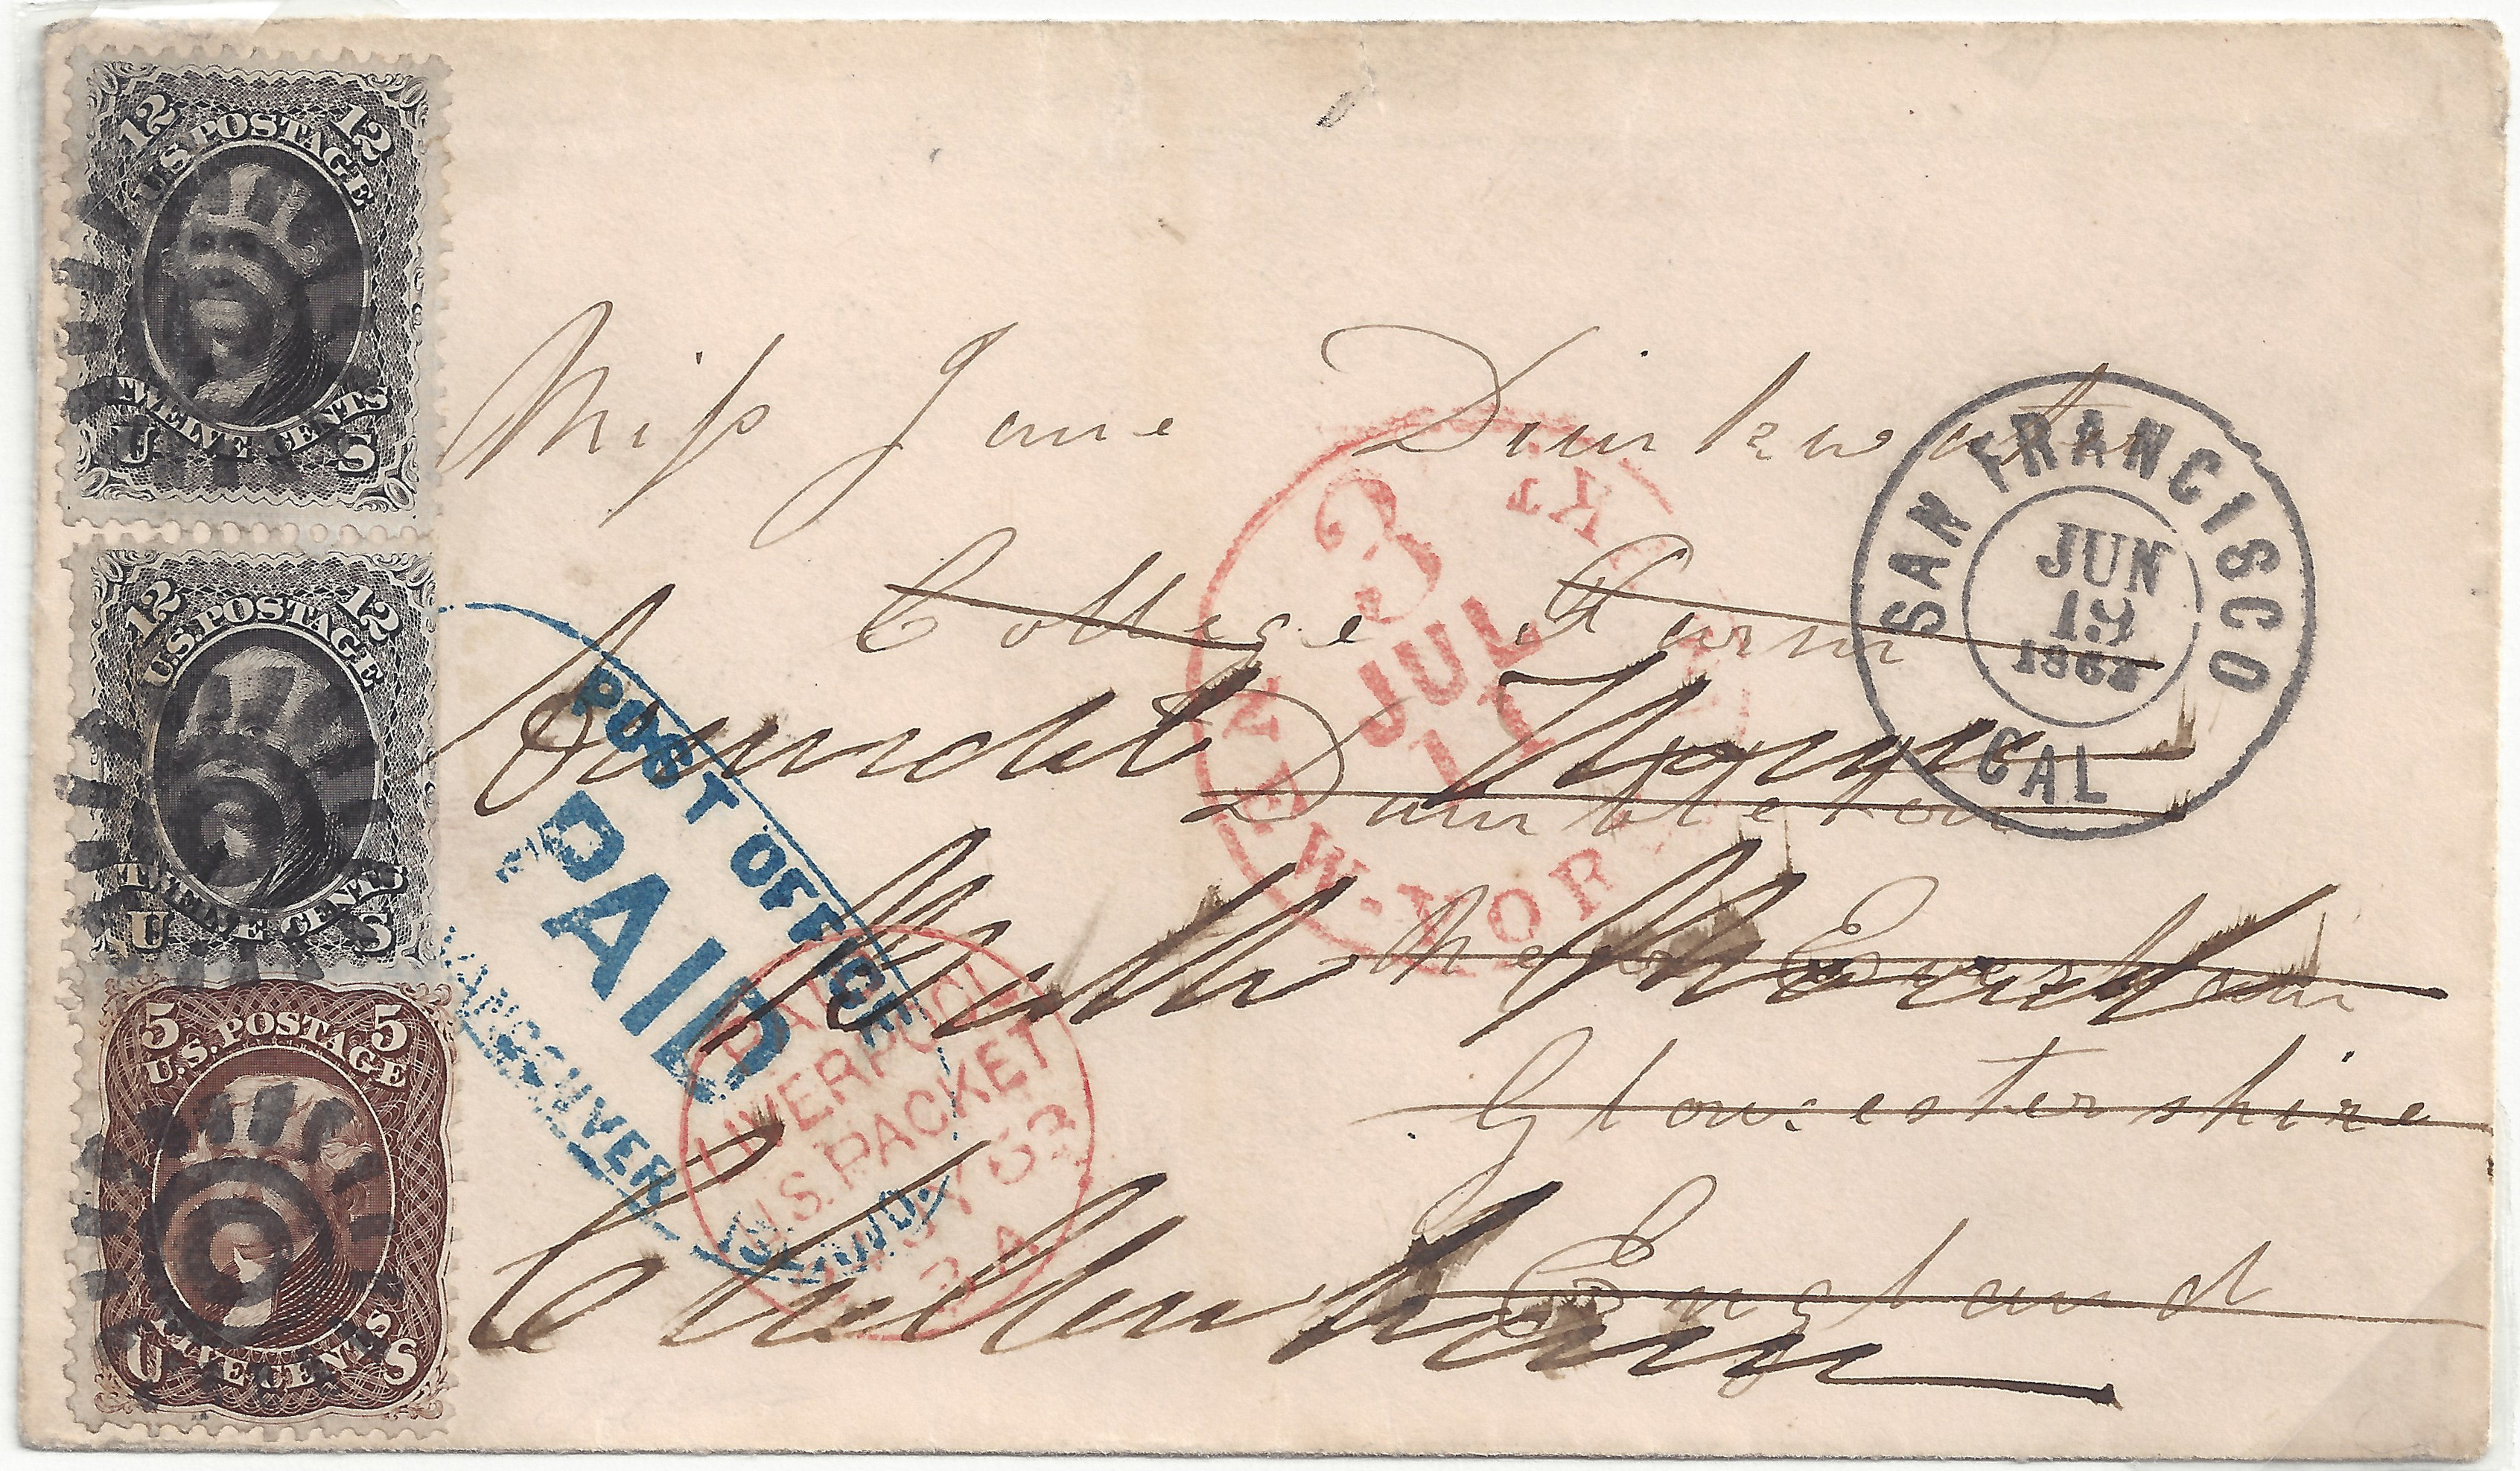 Suburban 20150304 5 033B 29c Rate From VI To England Post Office PAID Vancouver Hs (69x2 76)